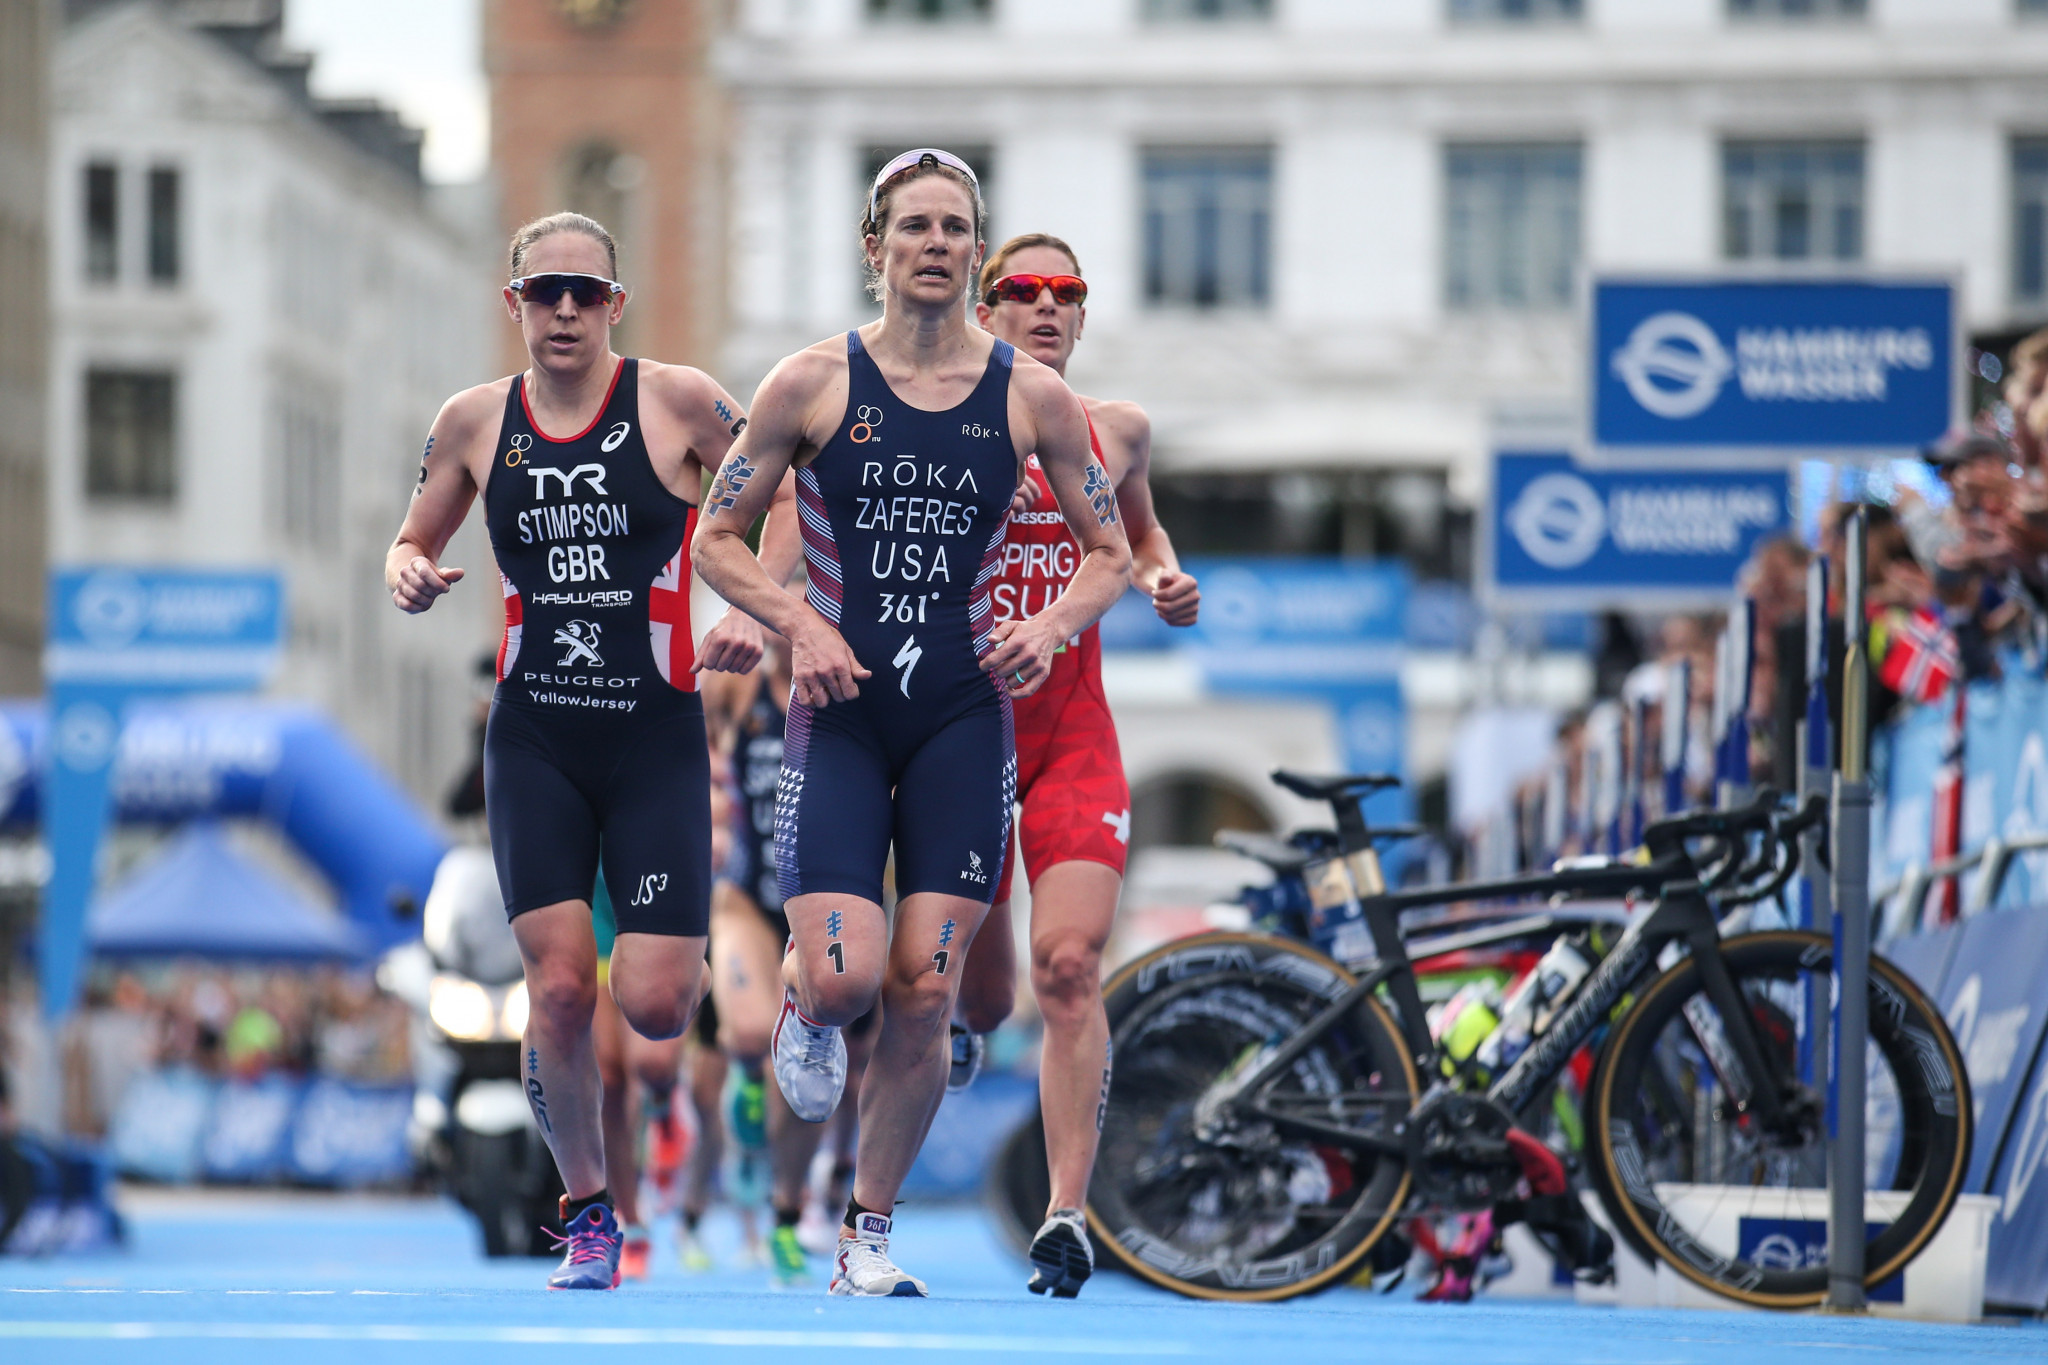 World Triathlon to not restart Olympic qualification until March 2021